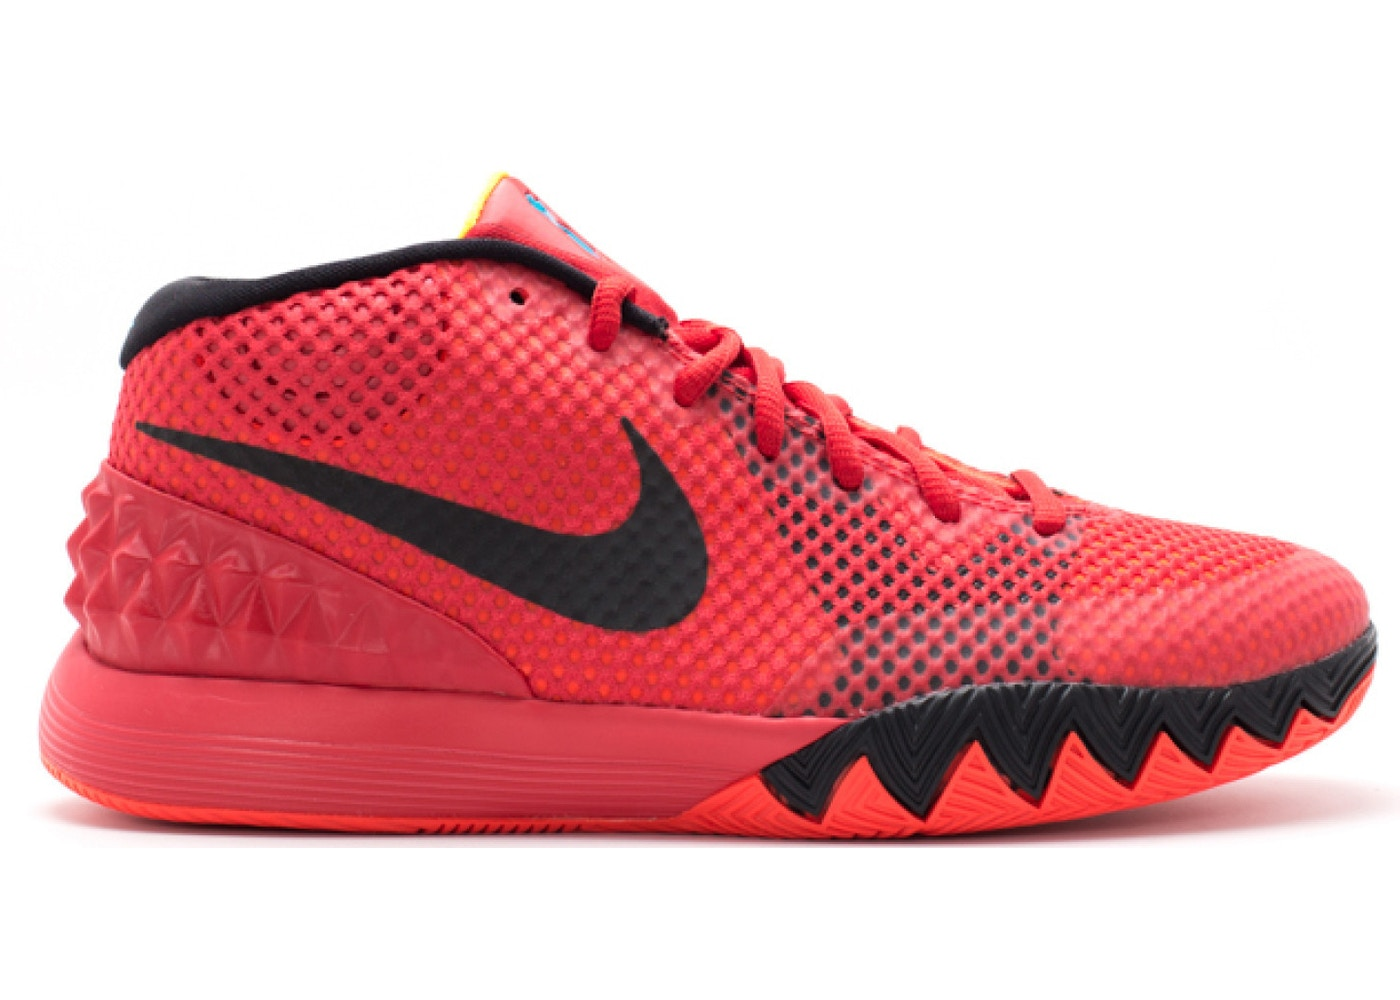 Nike Kyrie 1 Deceptive Red (GS) - 717219-606